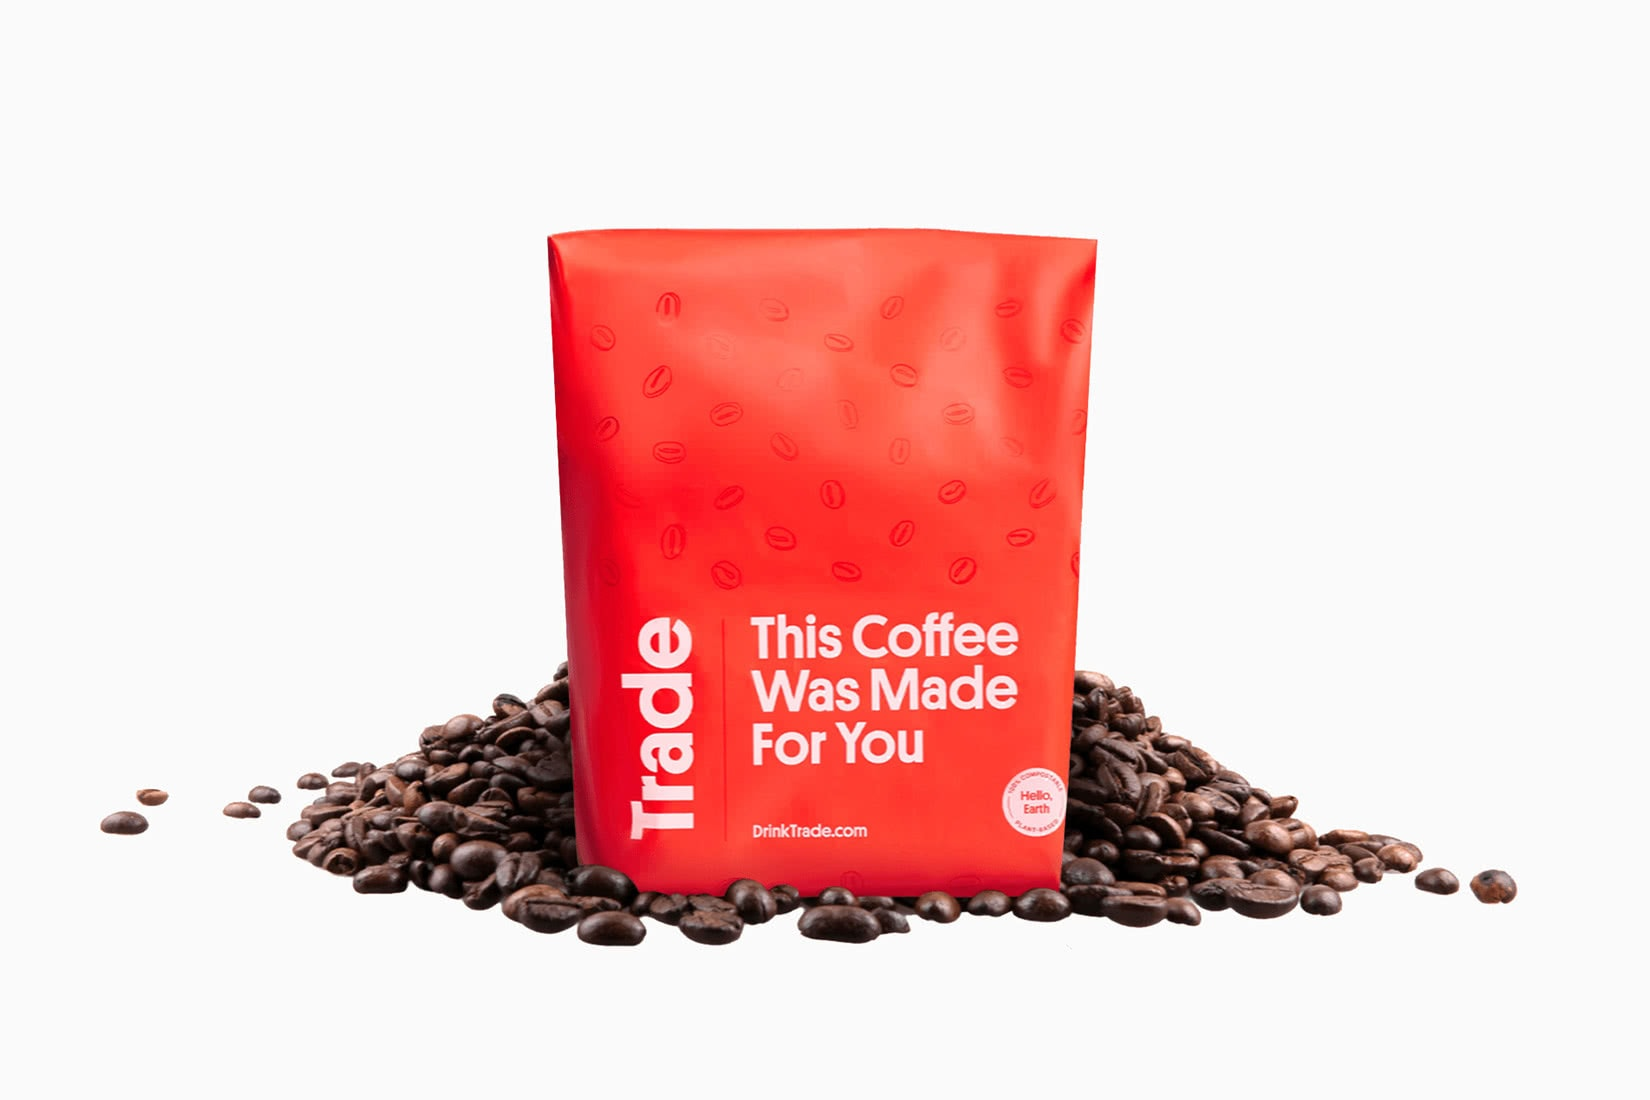 best coffee beans brands USA trade review - Luxe Digital